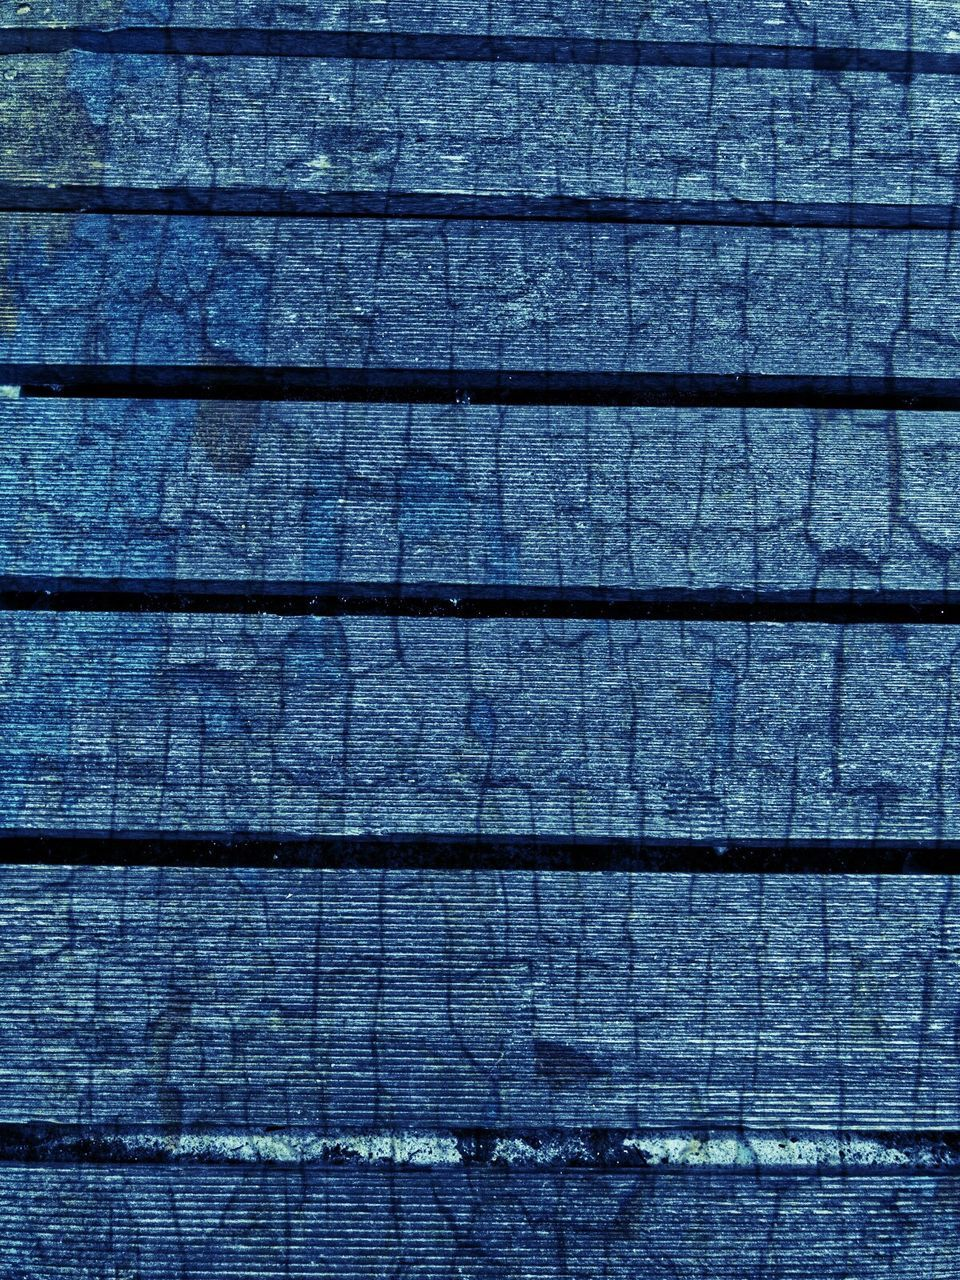 backgrounds, full frame, textured, pattern, blue, close-up, no people, day, outdoors